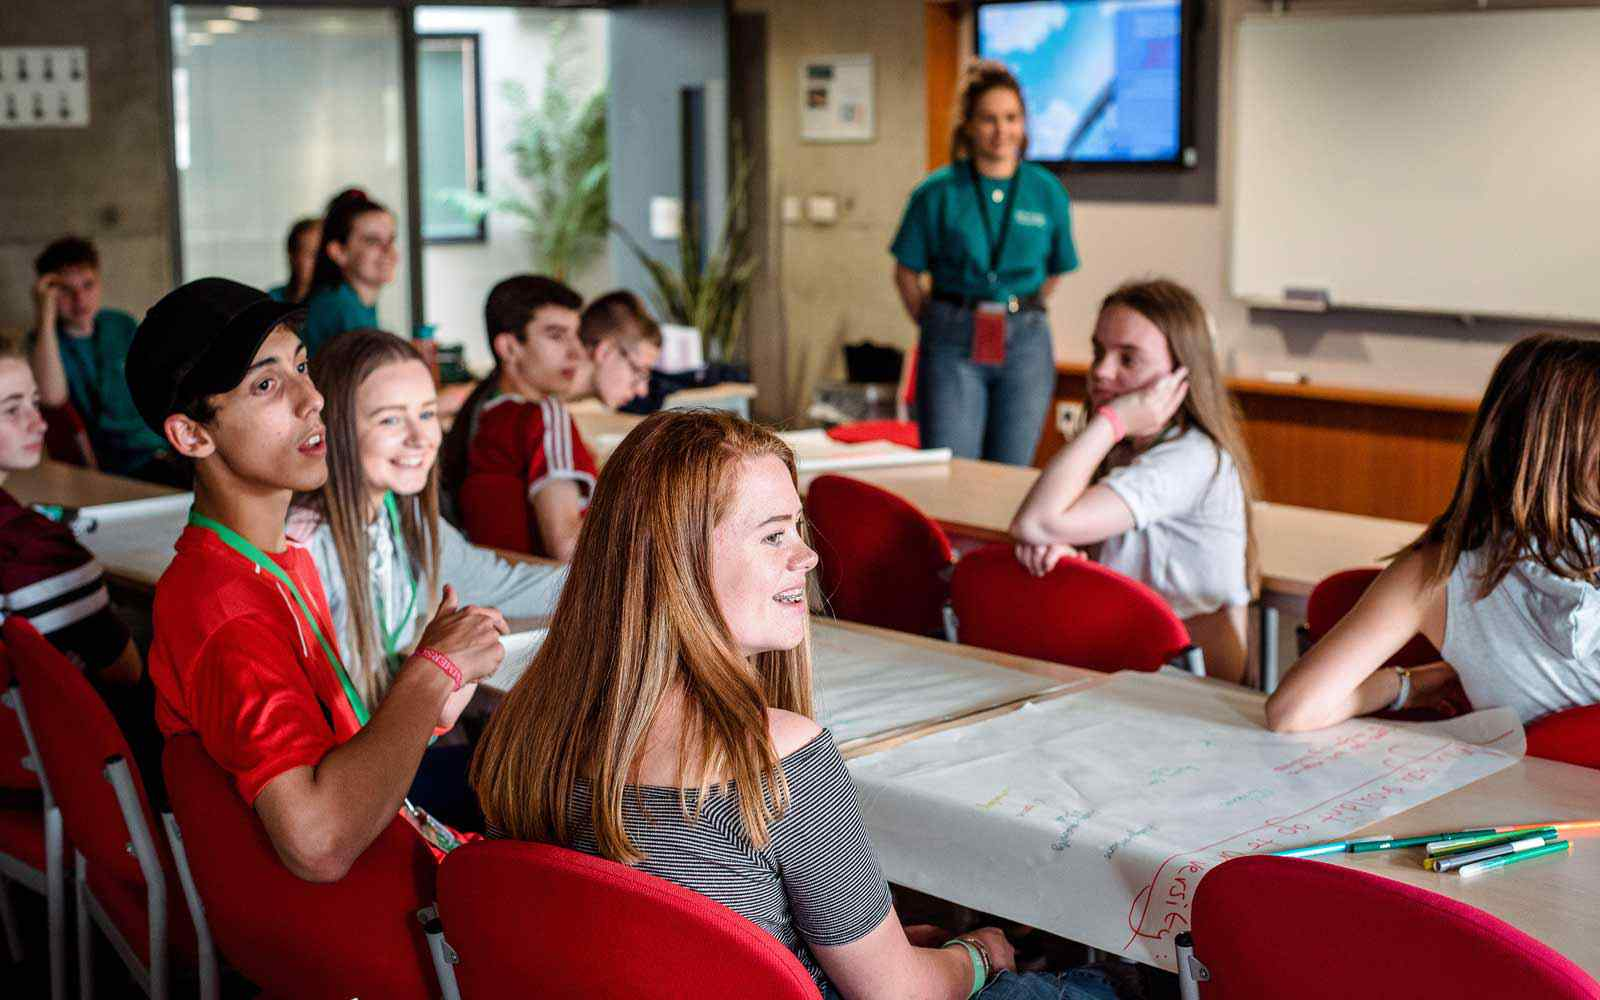 Students sit at tables and chat during a York St John event.